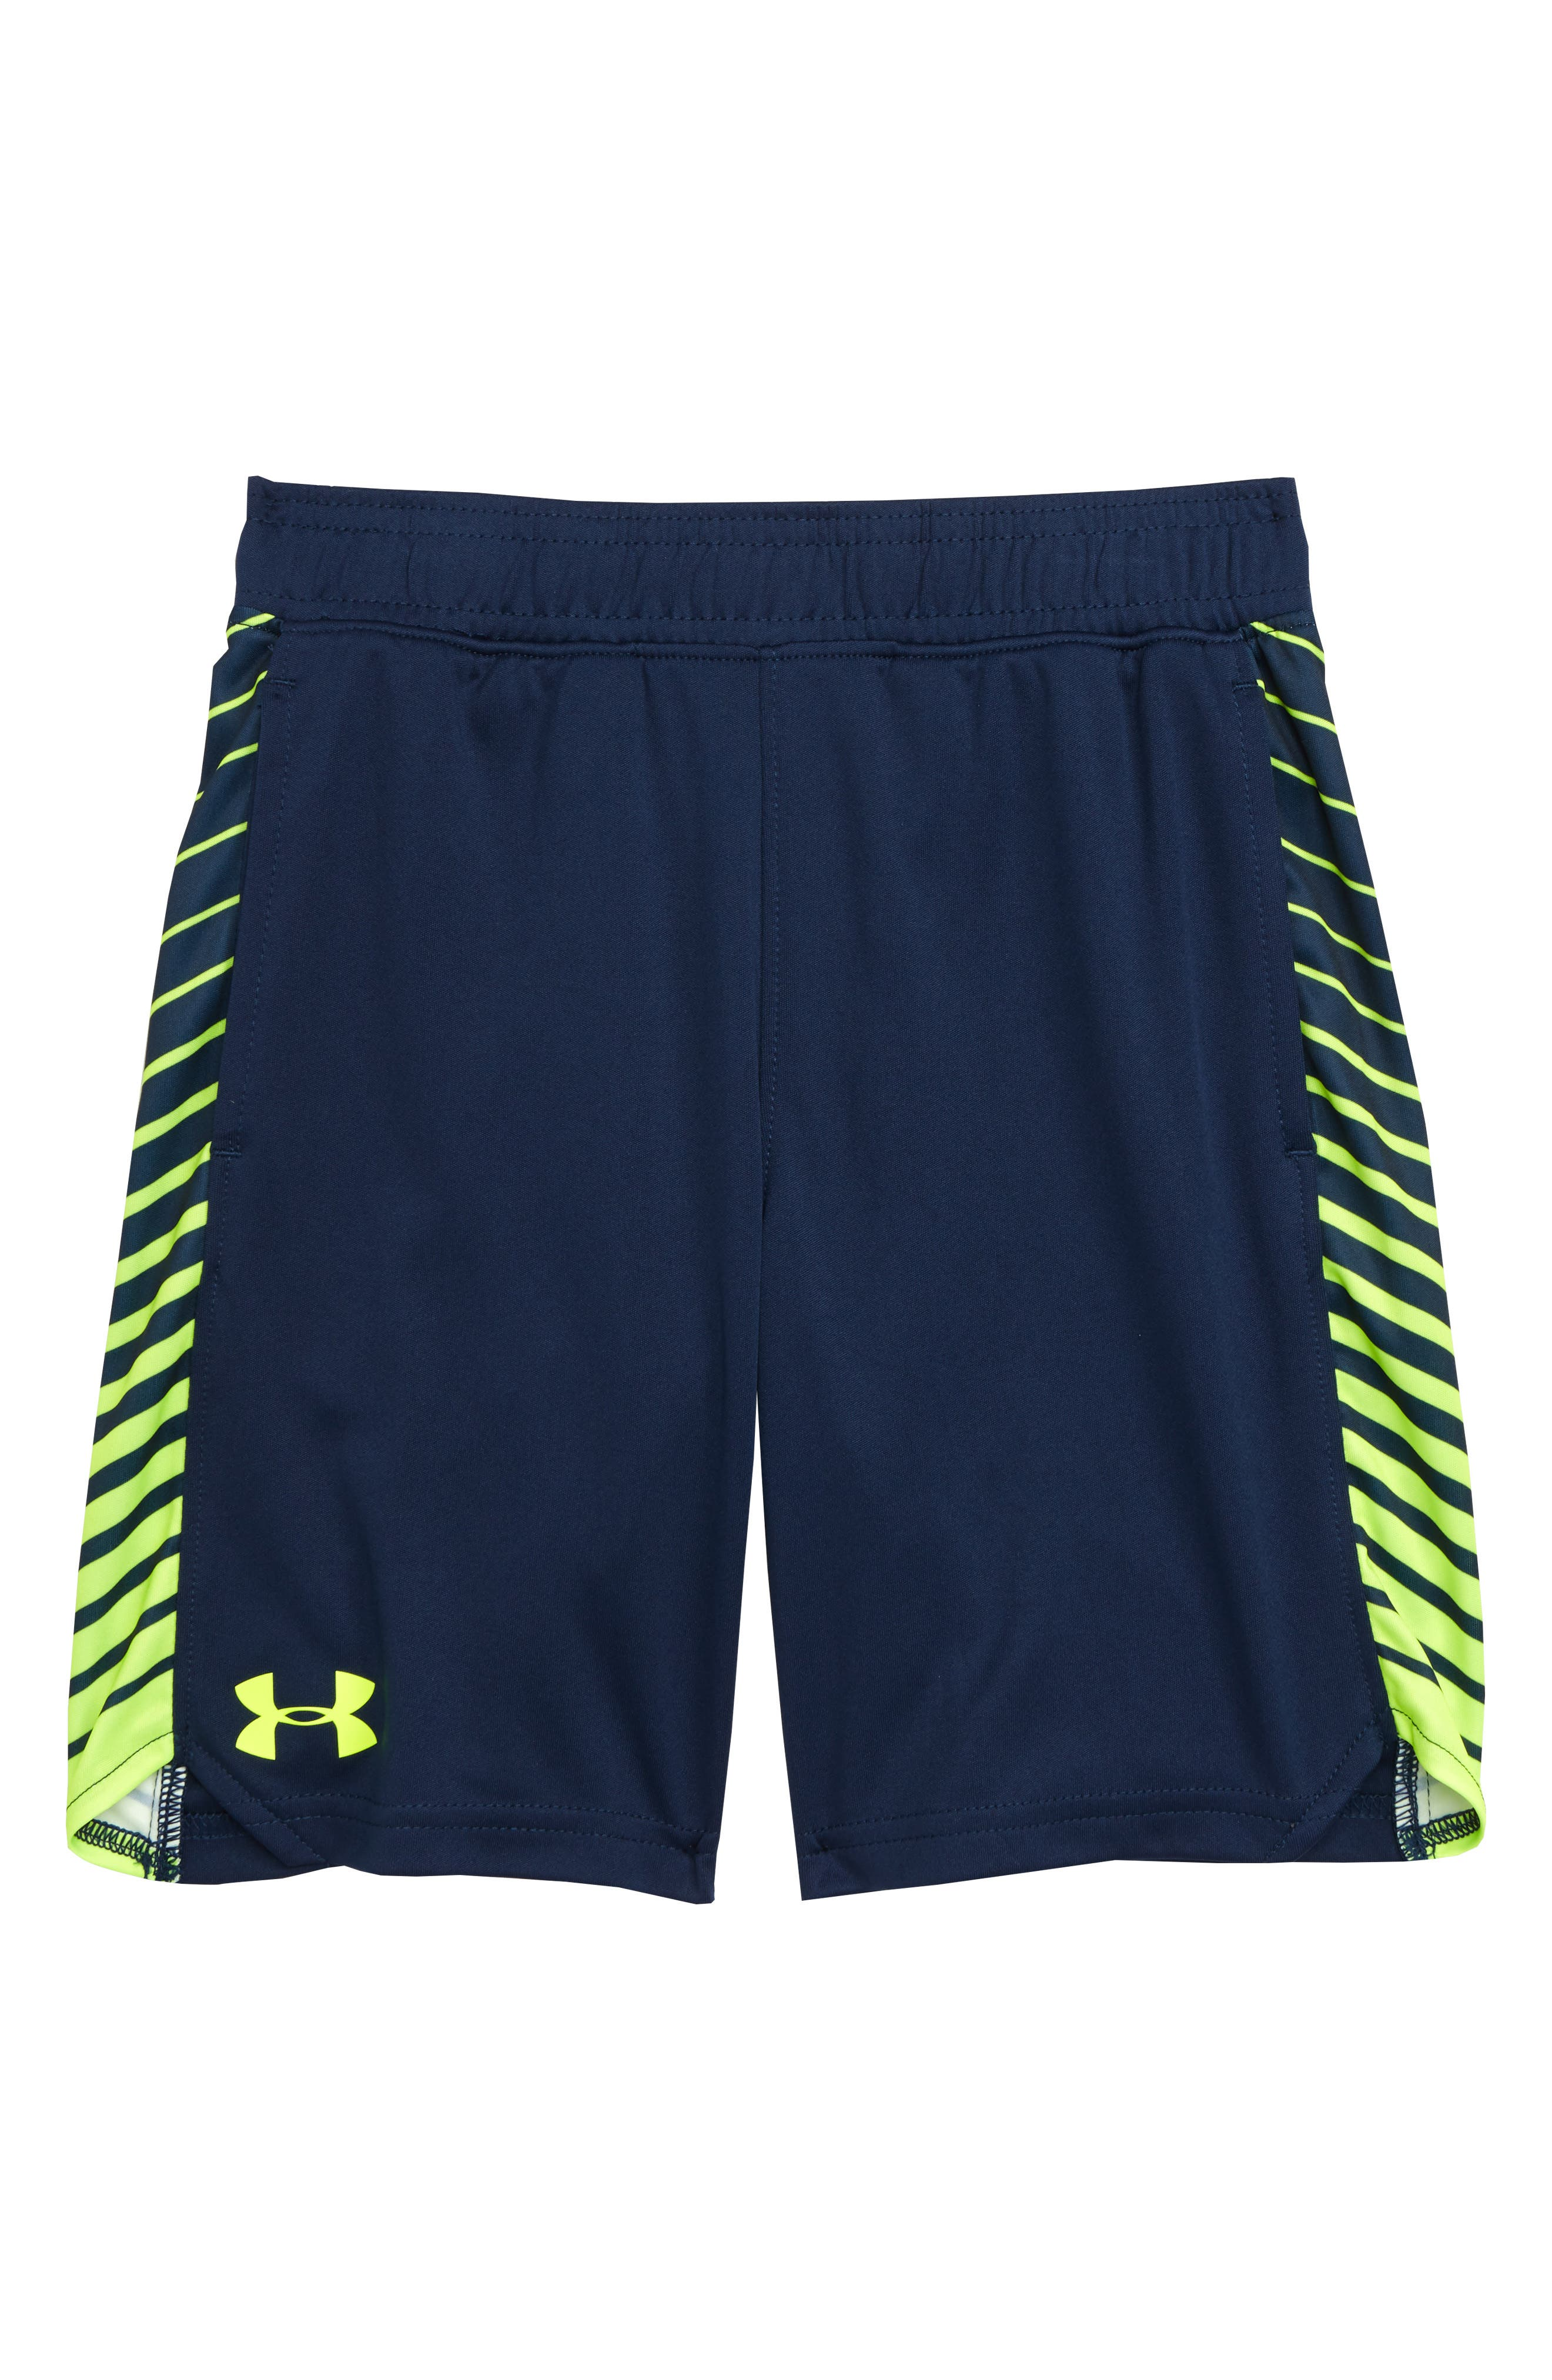 Toddler Boys Under Armour Half Back Heatgear Shorts Size 4T  Blue